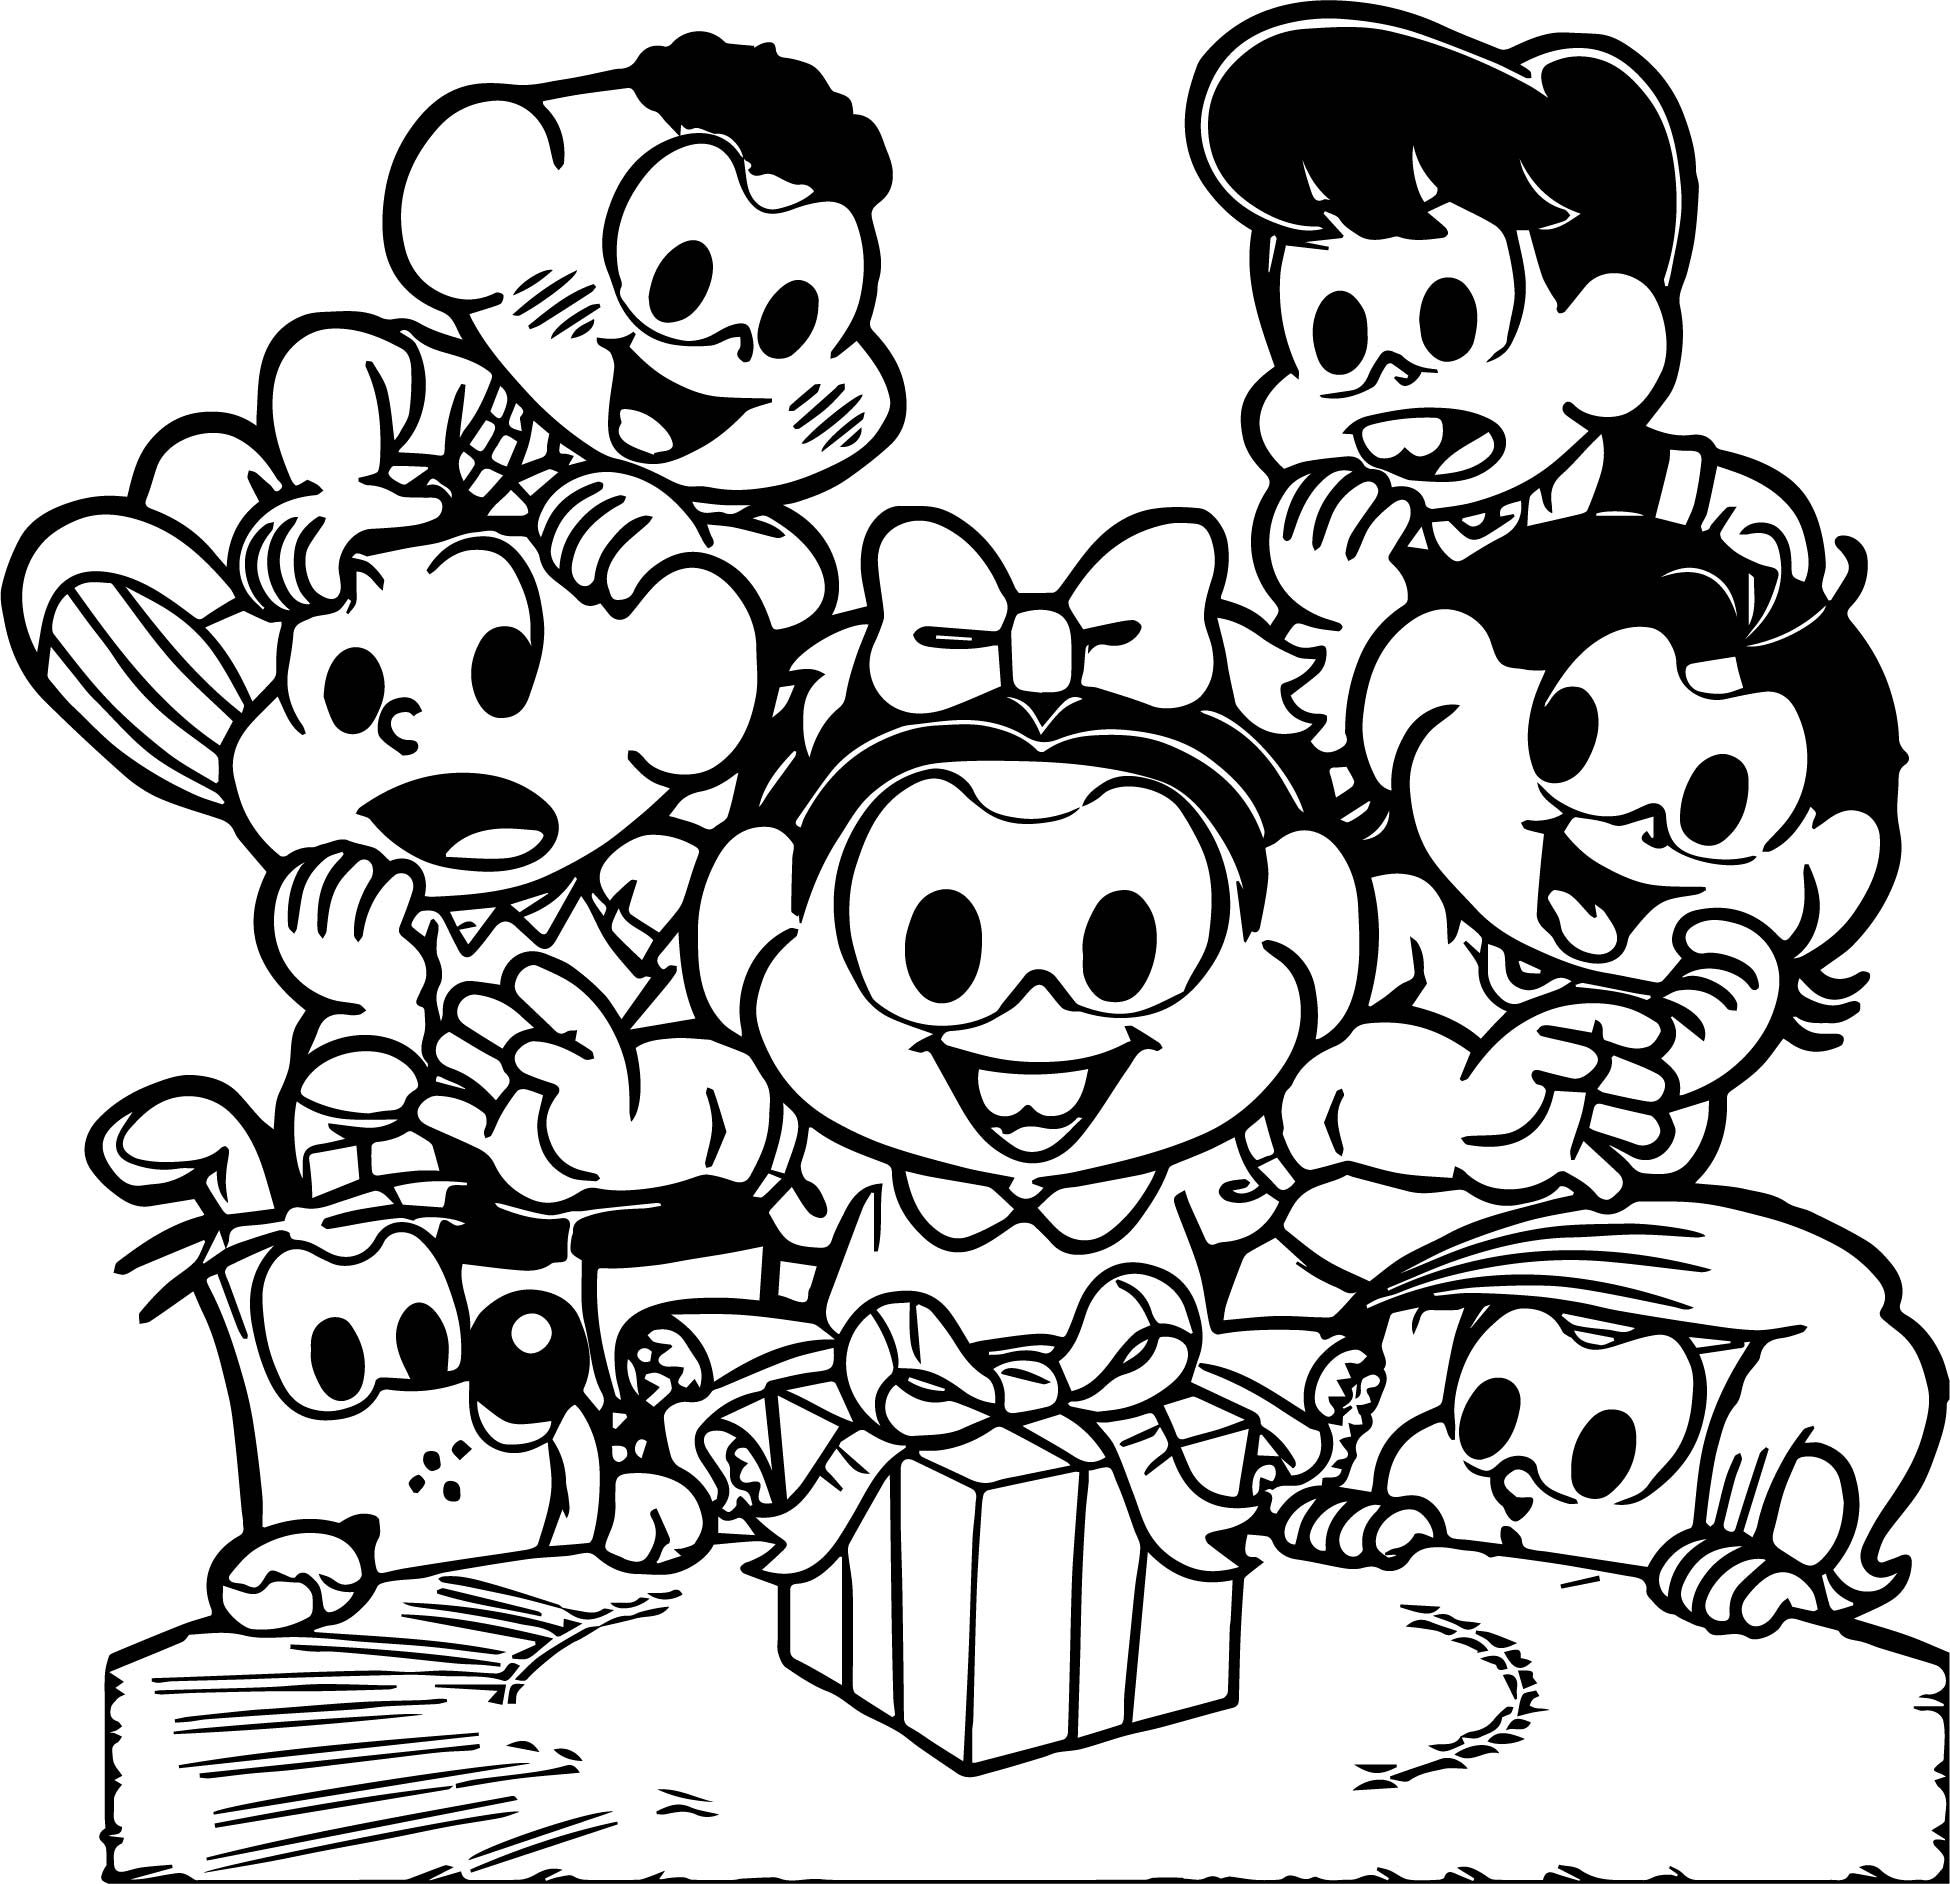 Turma Da Monica Big Suprise Coloring Page